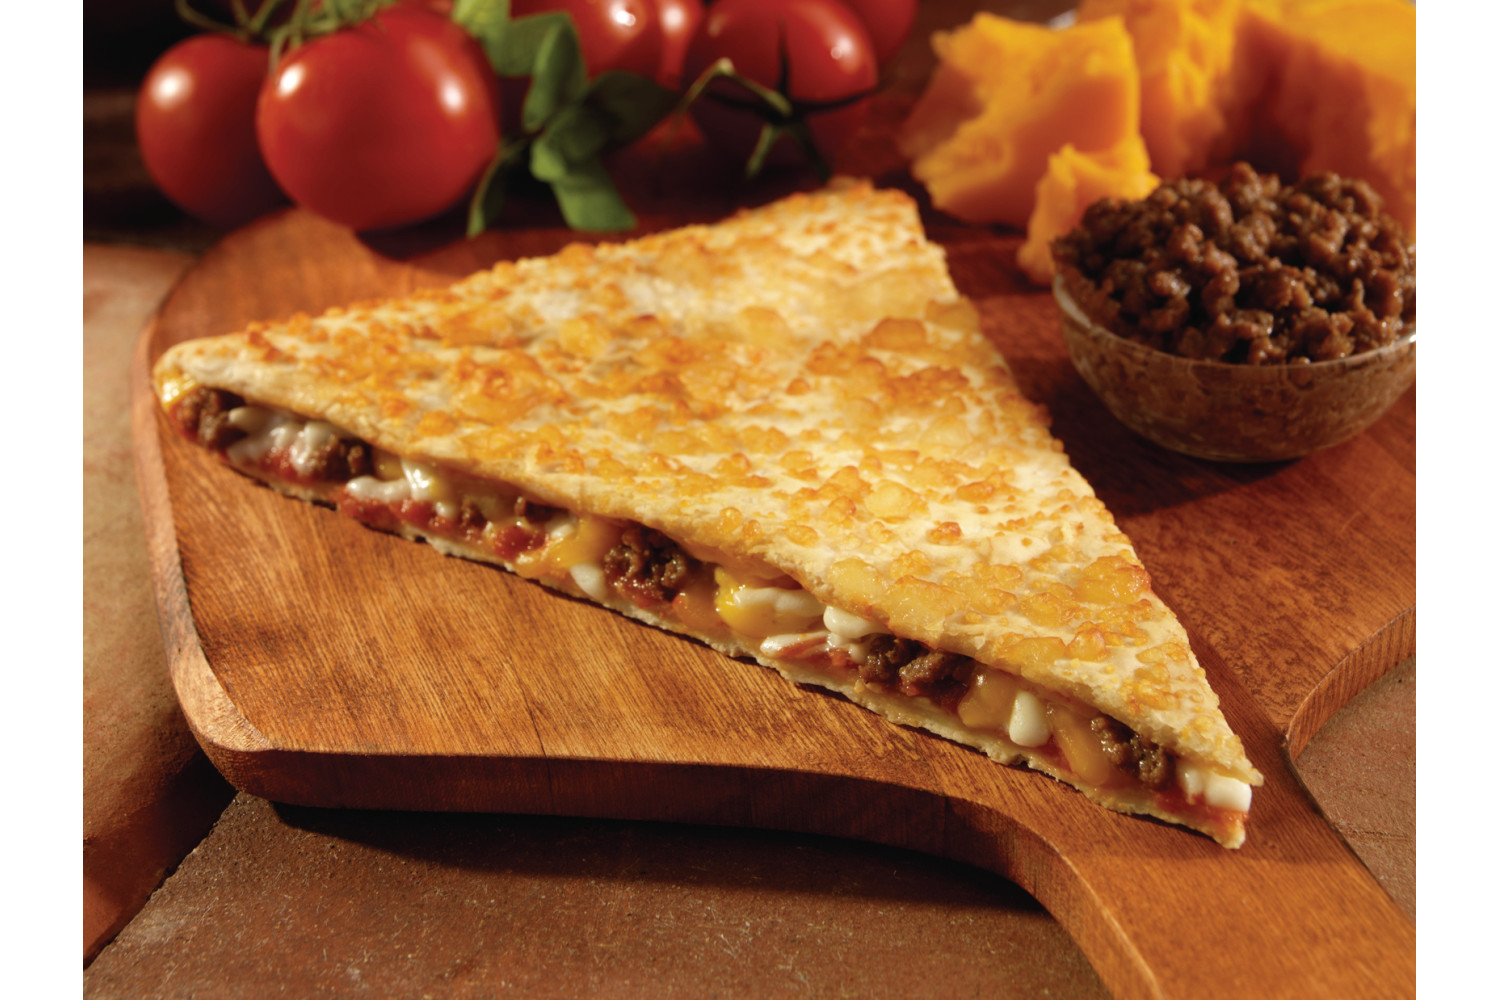 Beef Quesadilla, Whole Grain, 5 oz, CN